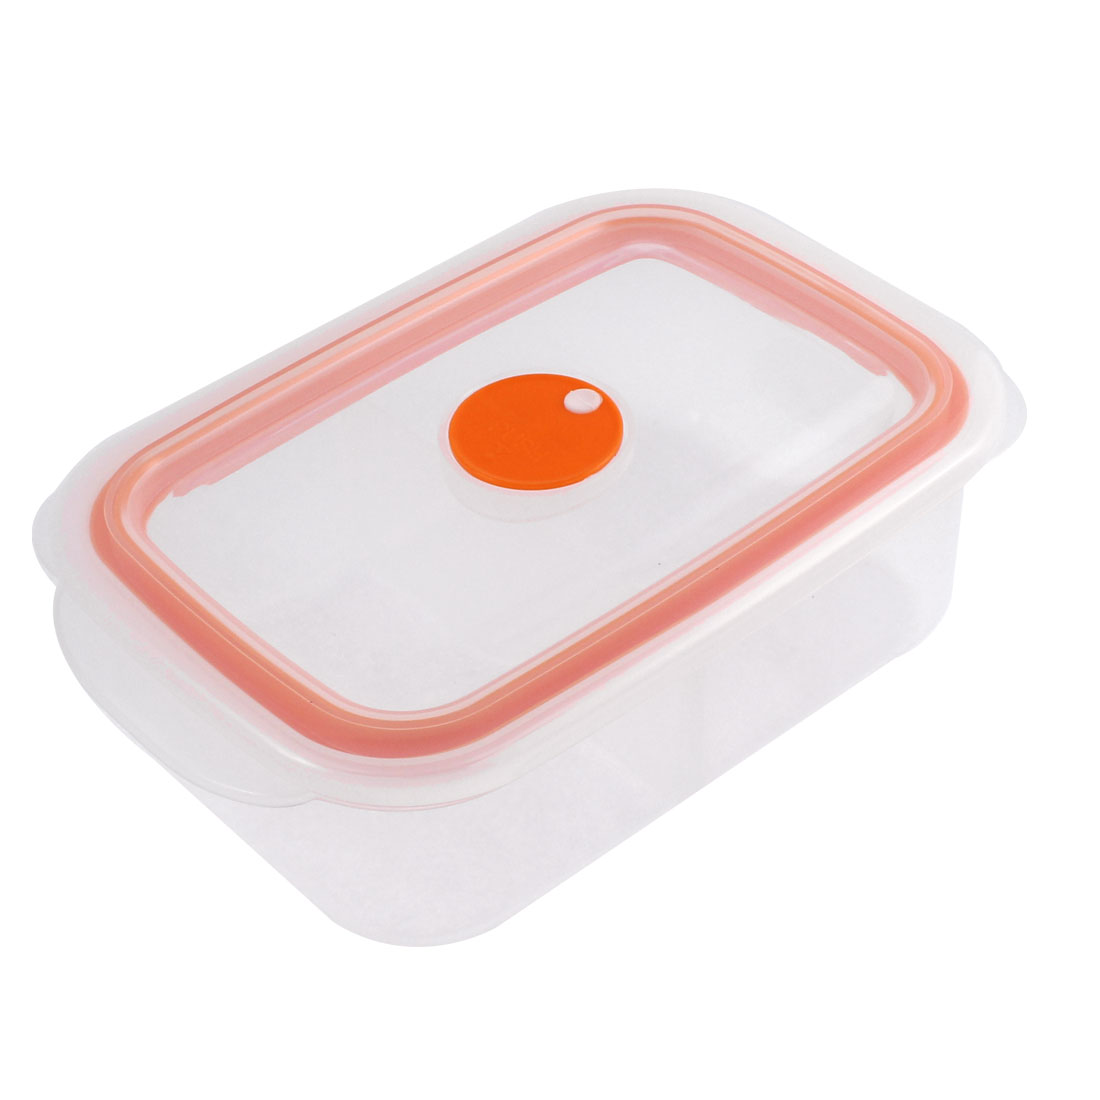 Home School Plastic Dual Compartments Food Storage Lunch Box Orange